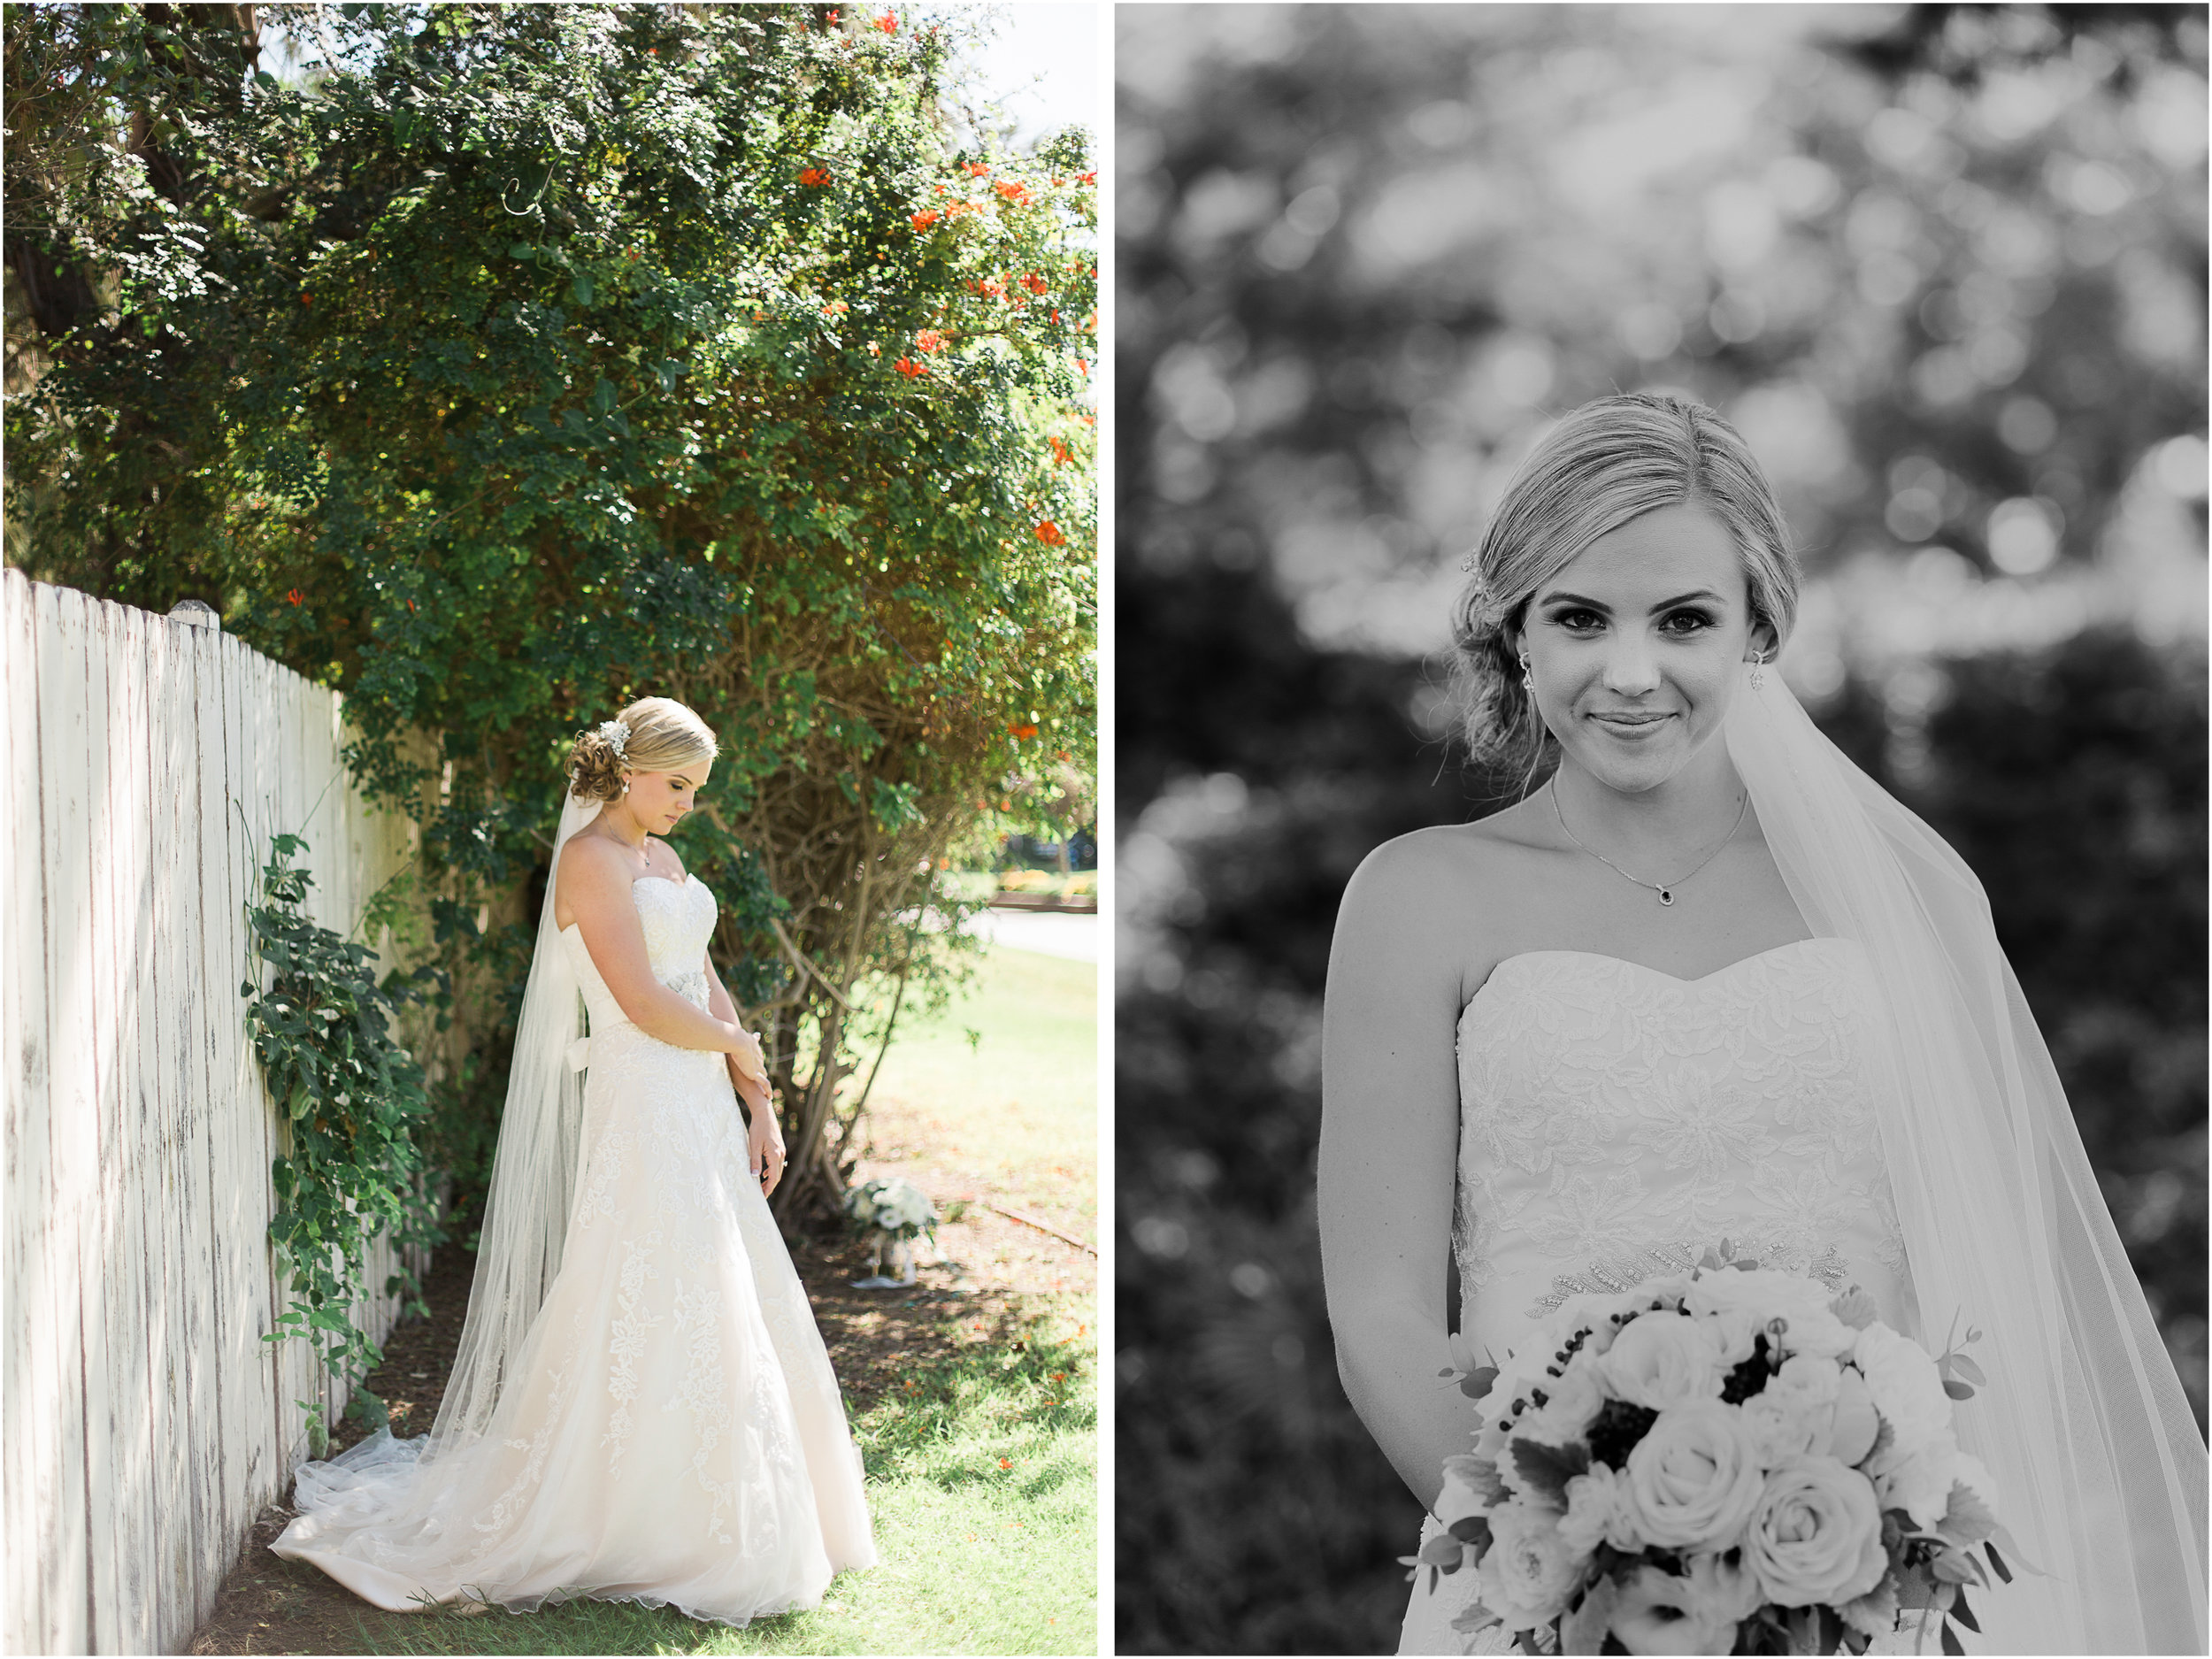 Katie, you made such a stunning bride!